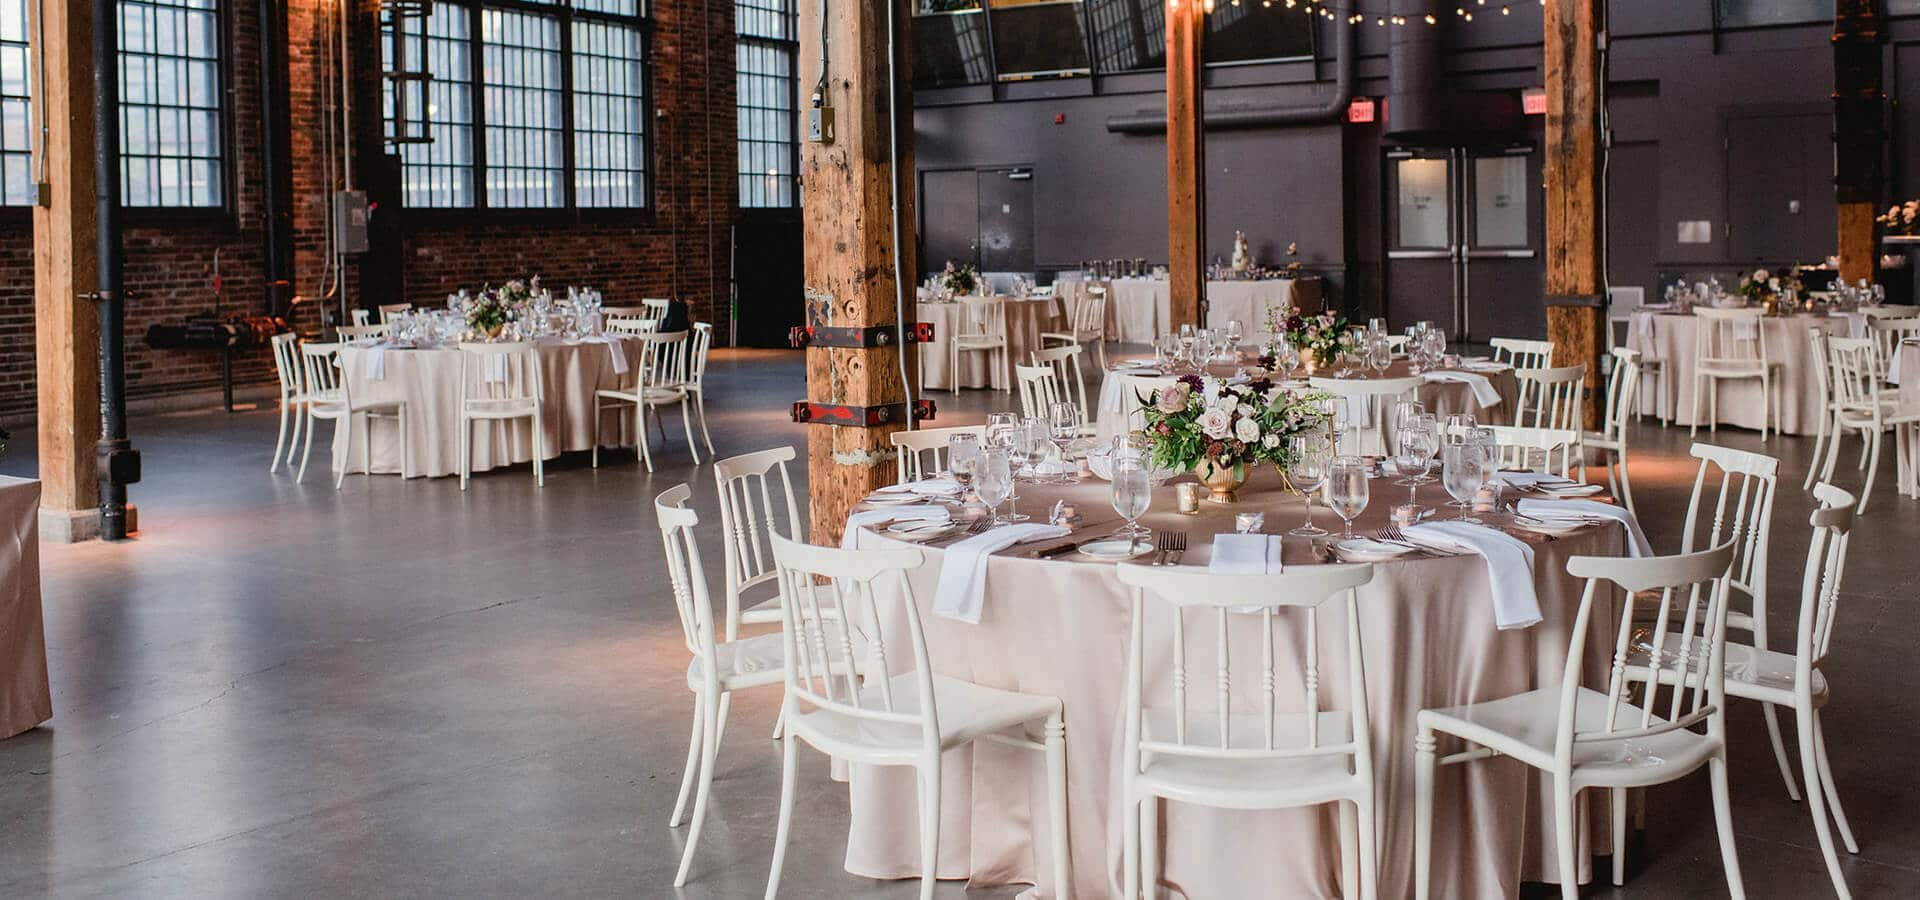 Hero image for Daniela and Andrei's Sweet Wedding at Steam Whistle Brewery